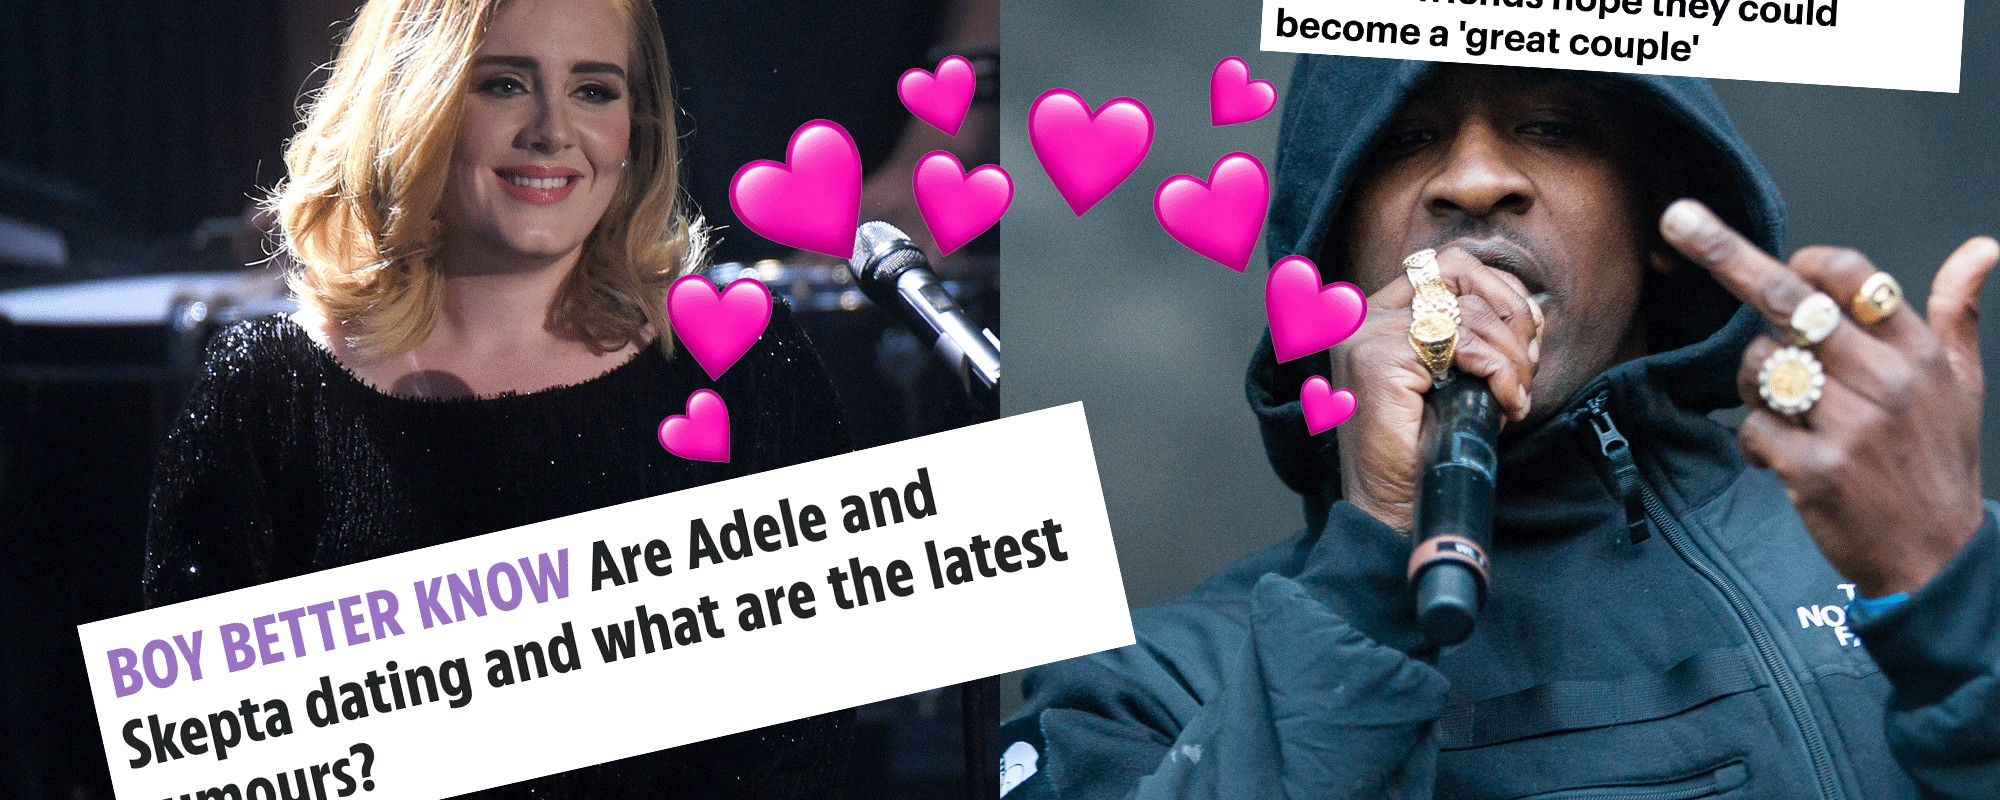 Are Skepta And Adele Really Dating Where Did The Story Come From